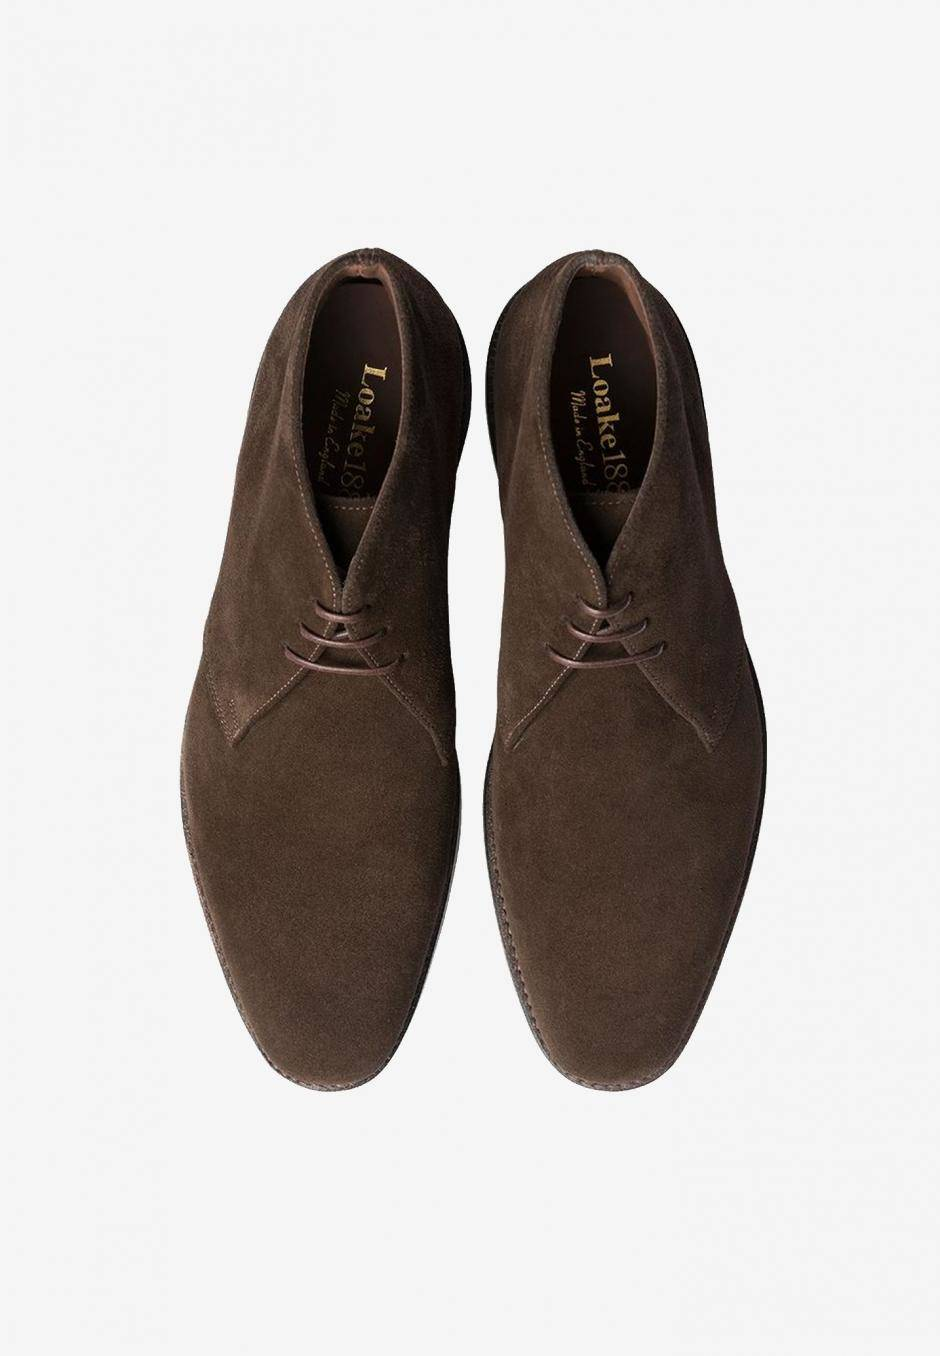 Loake Pimlico Dark Brown Suede